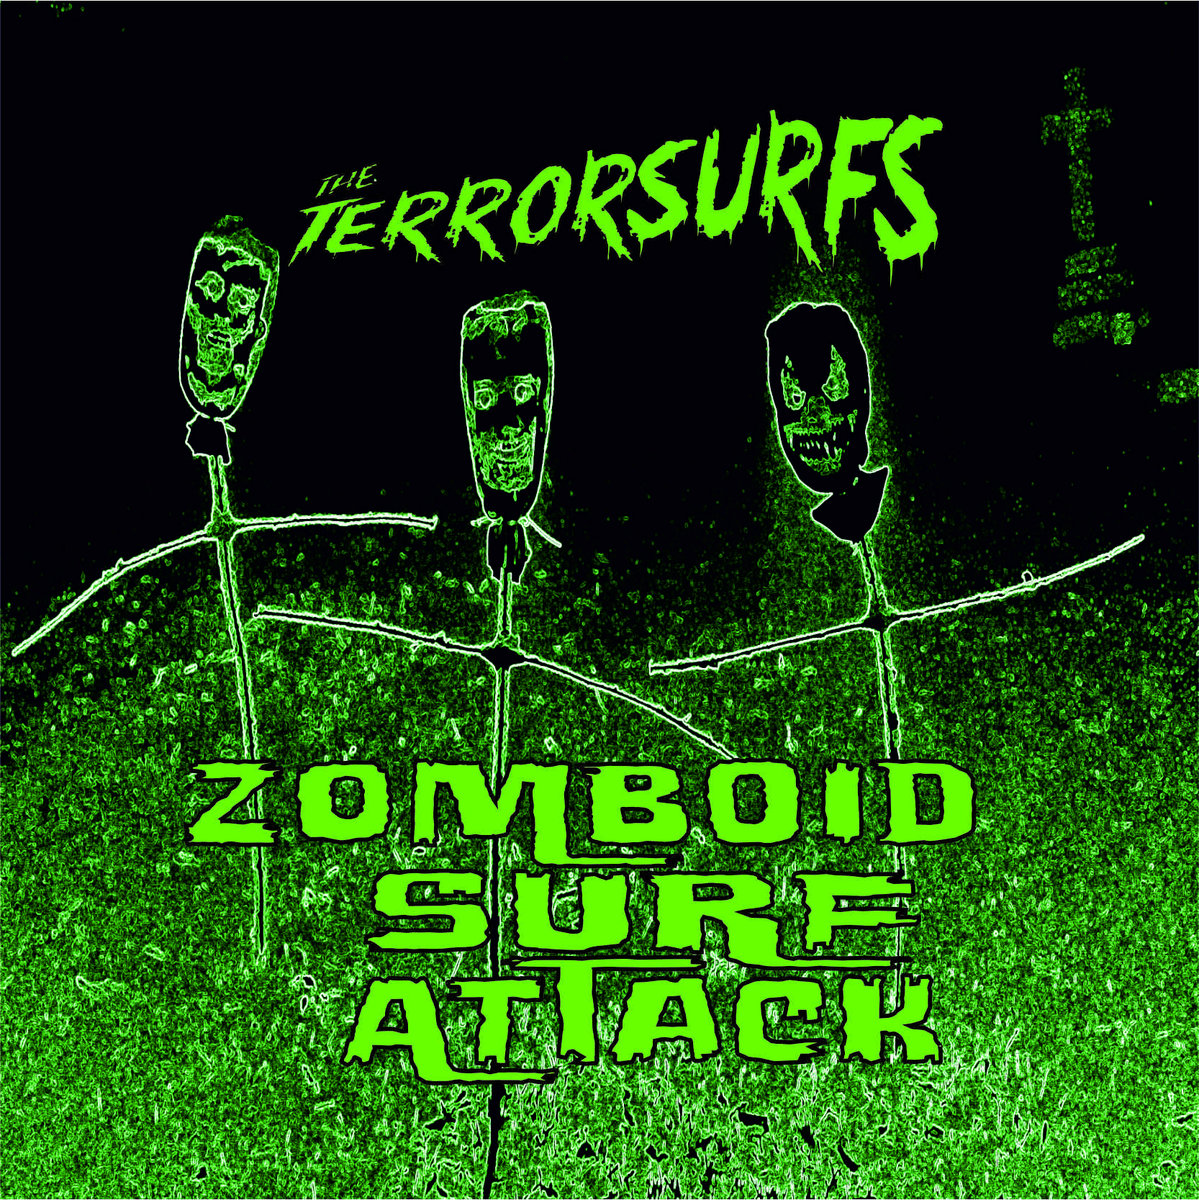 SRW014 The Terrorsurfs - Zomboid Surf Attack (Digital Download) Image